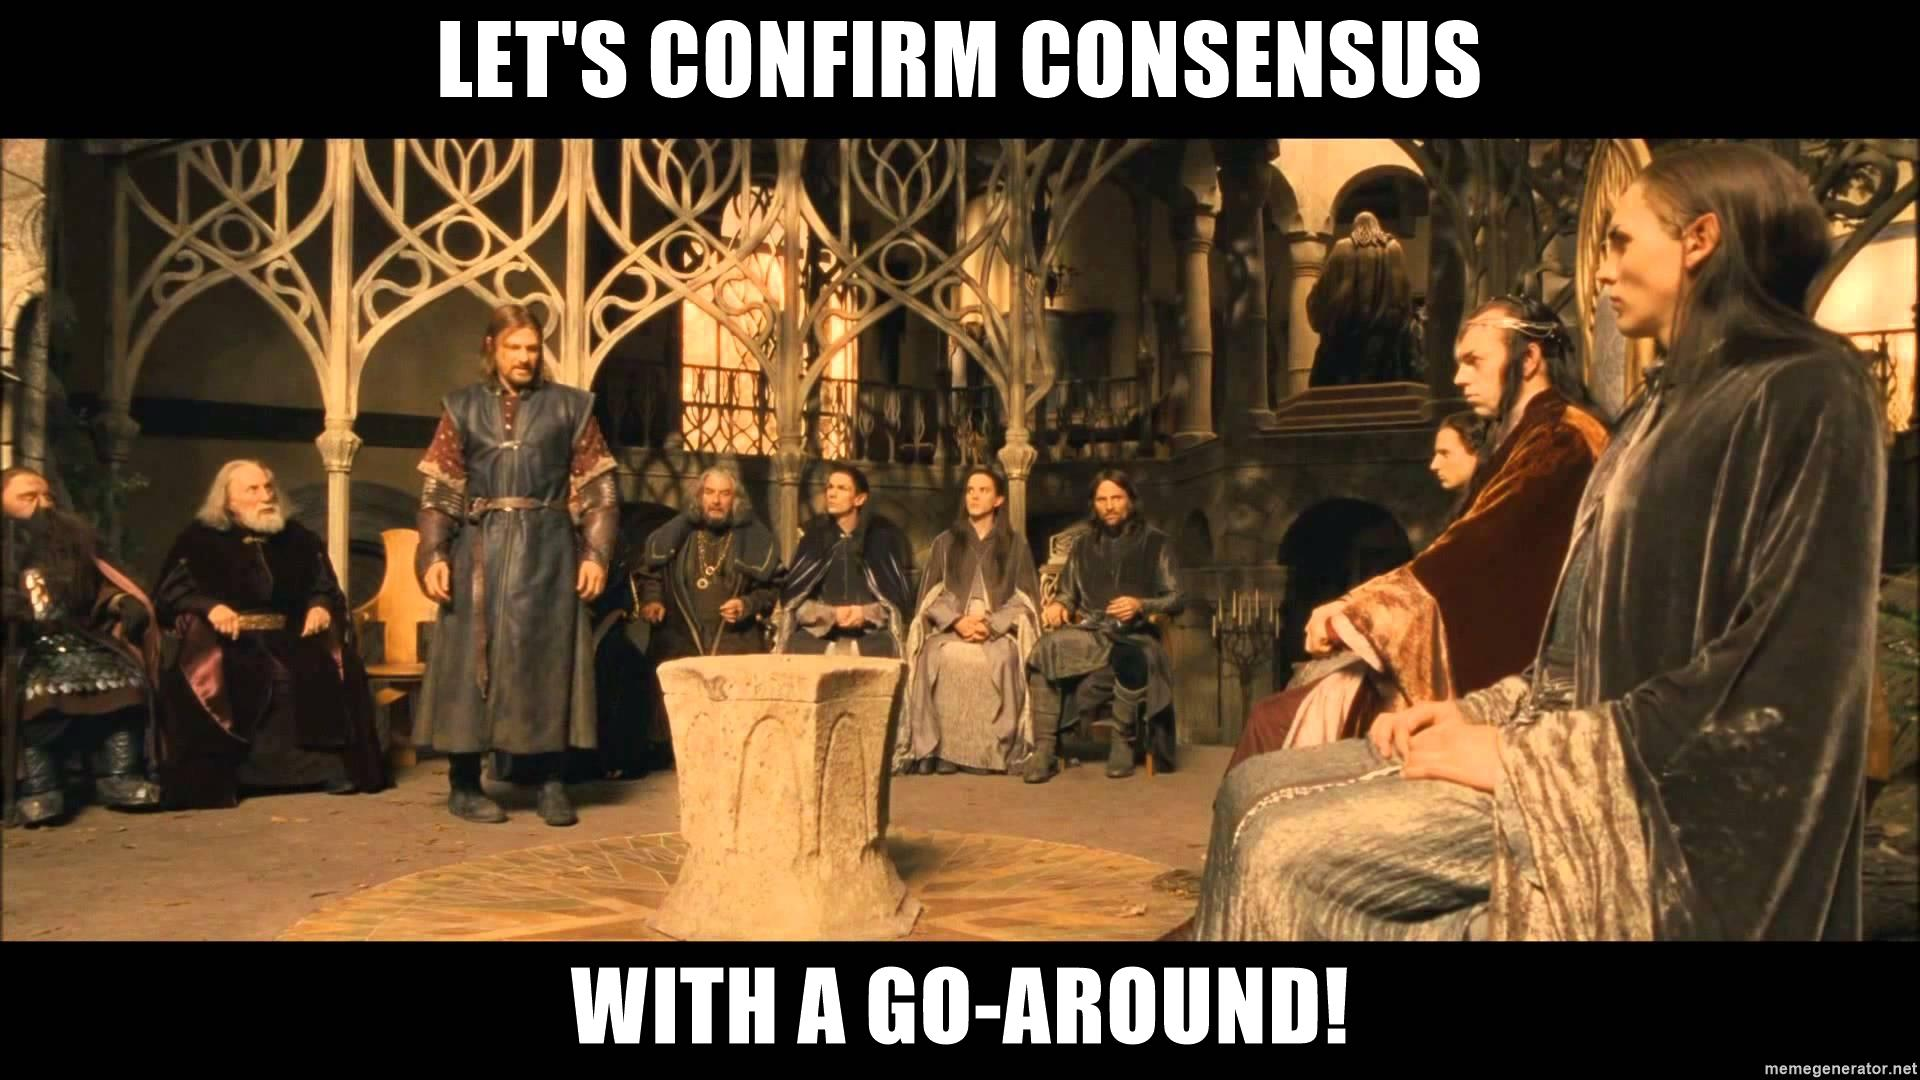 The Council of Elrond confirms decisions with a go-around